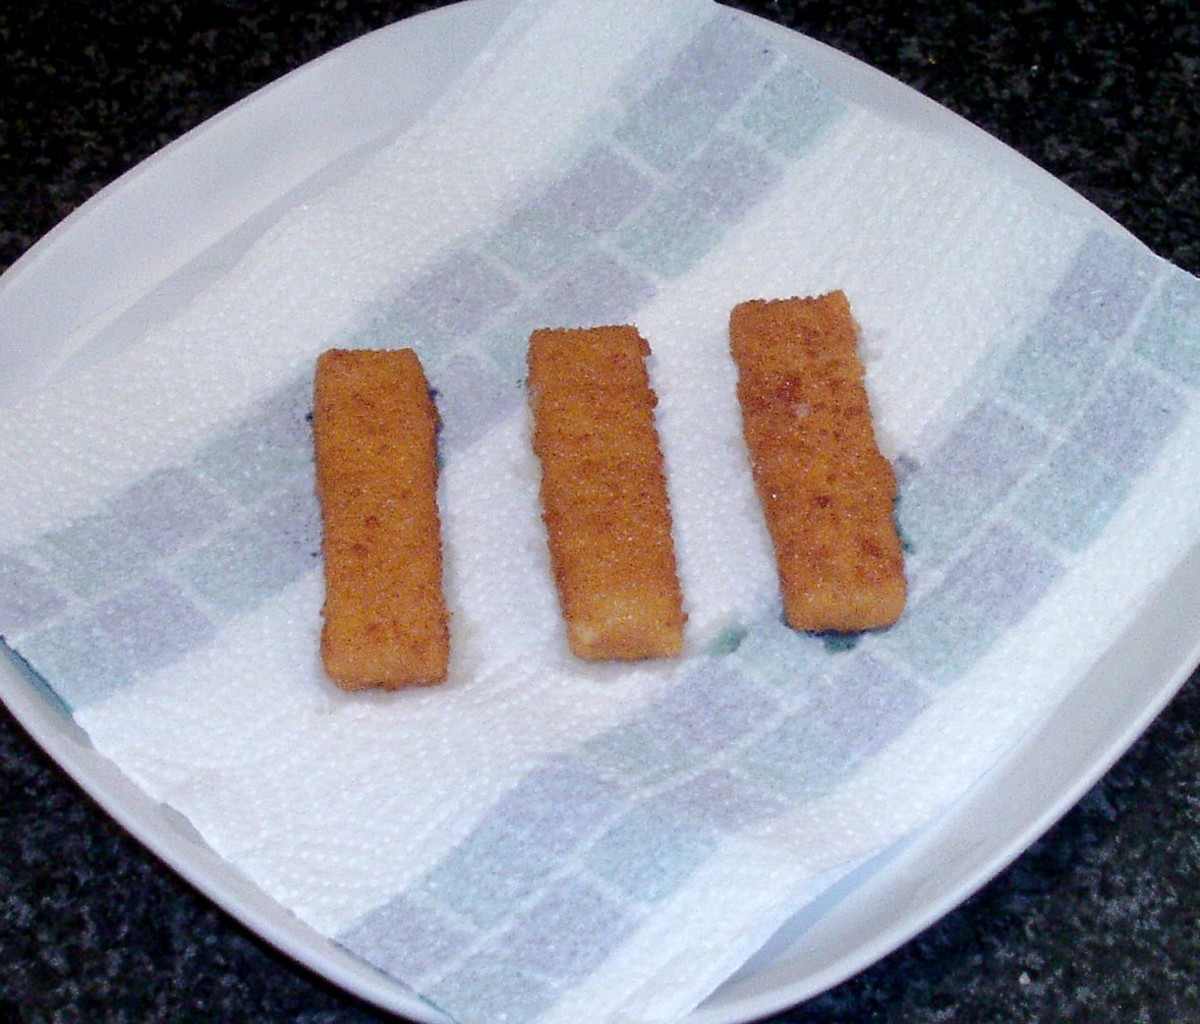 Fish fingers are drained on kitchen paper